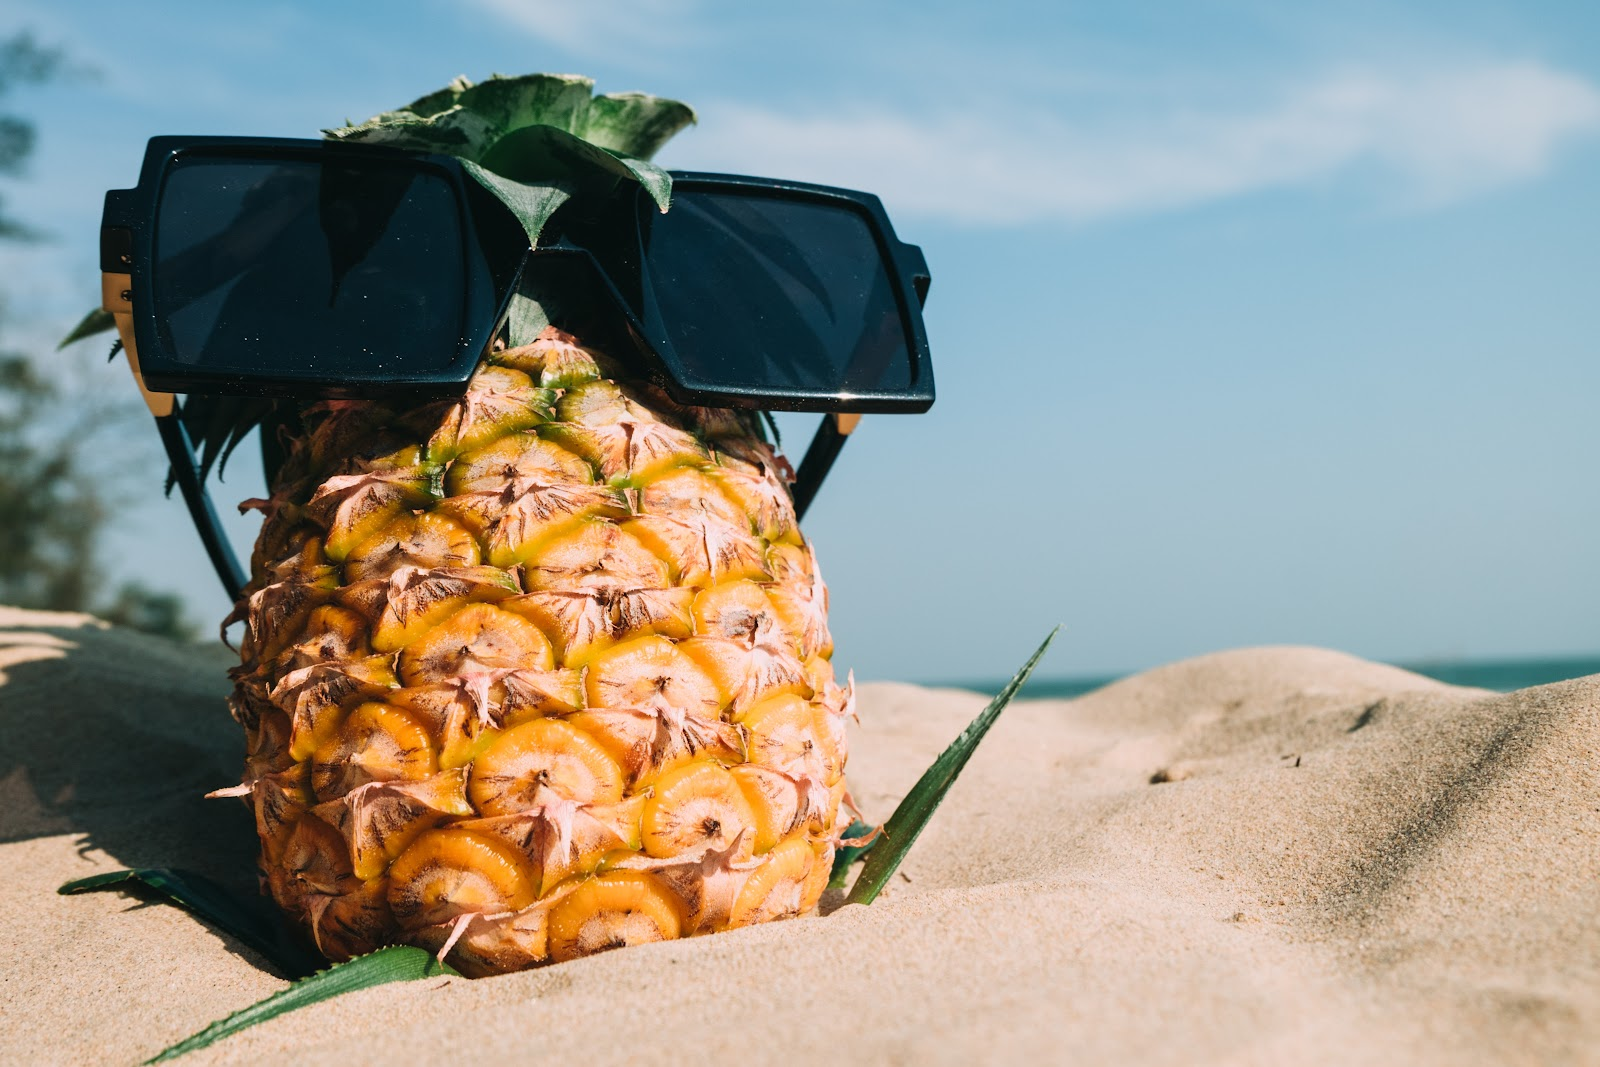 pineapple wearing sunglasses in the sand